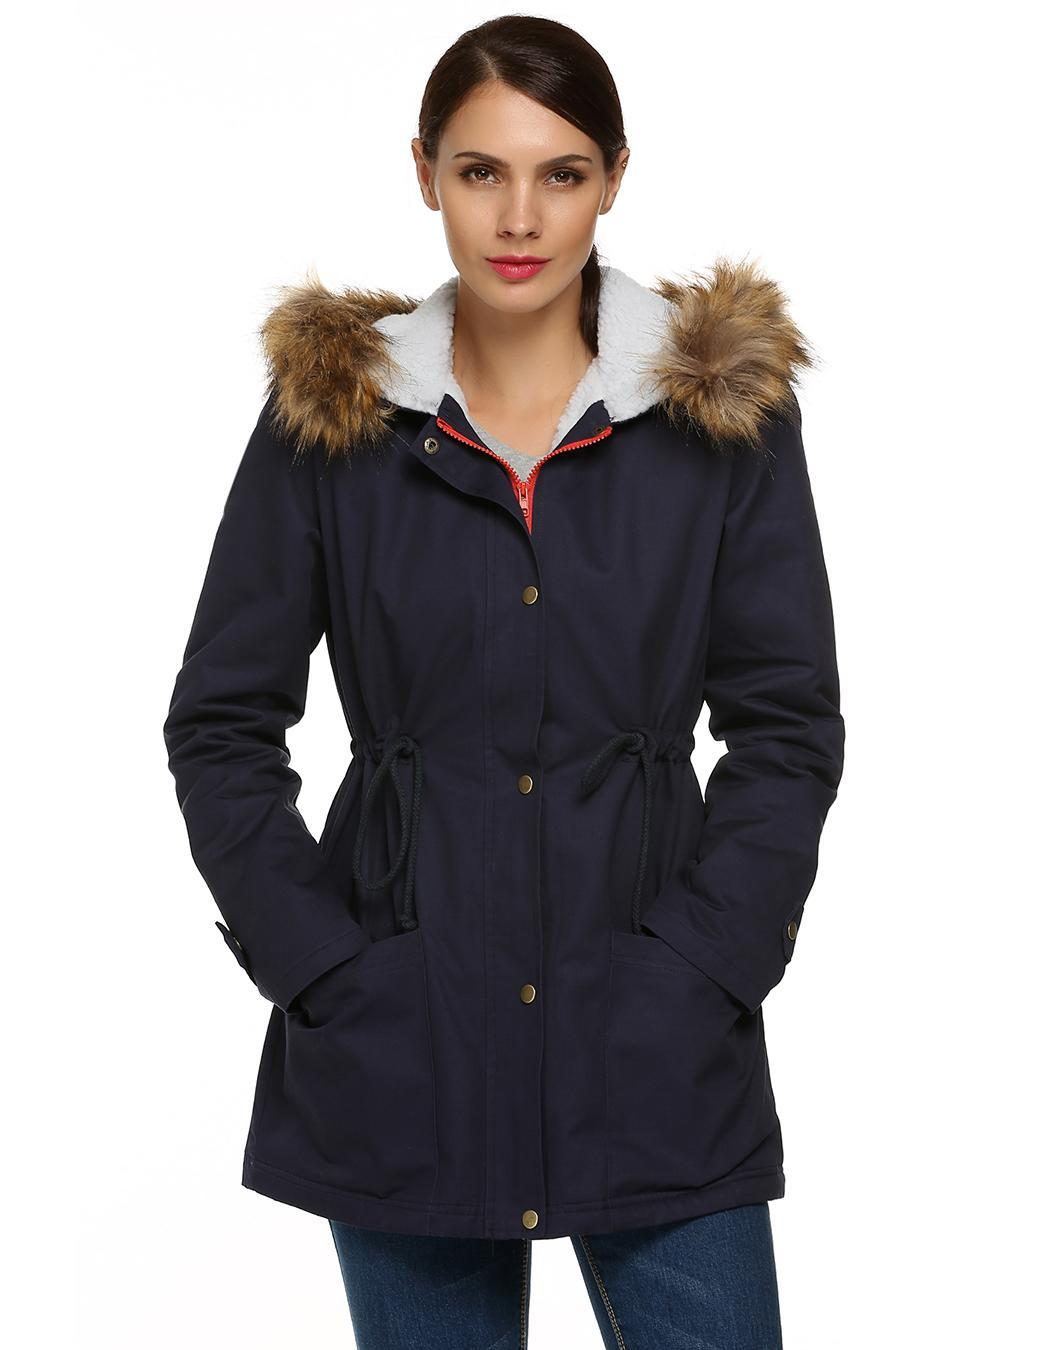 Women Zipper Hooded Warm Faux Fur Long Coat Outwear 1